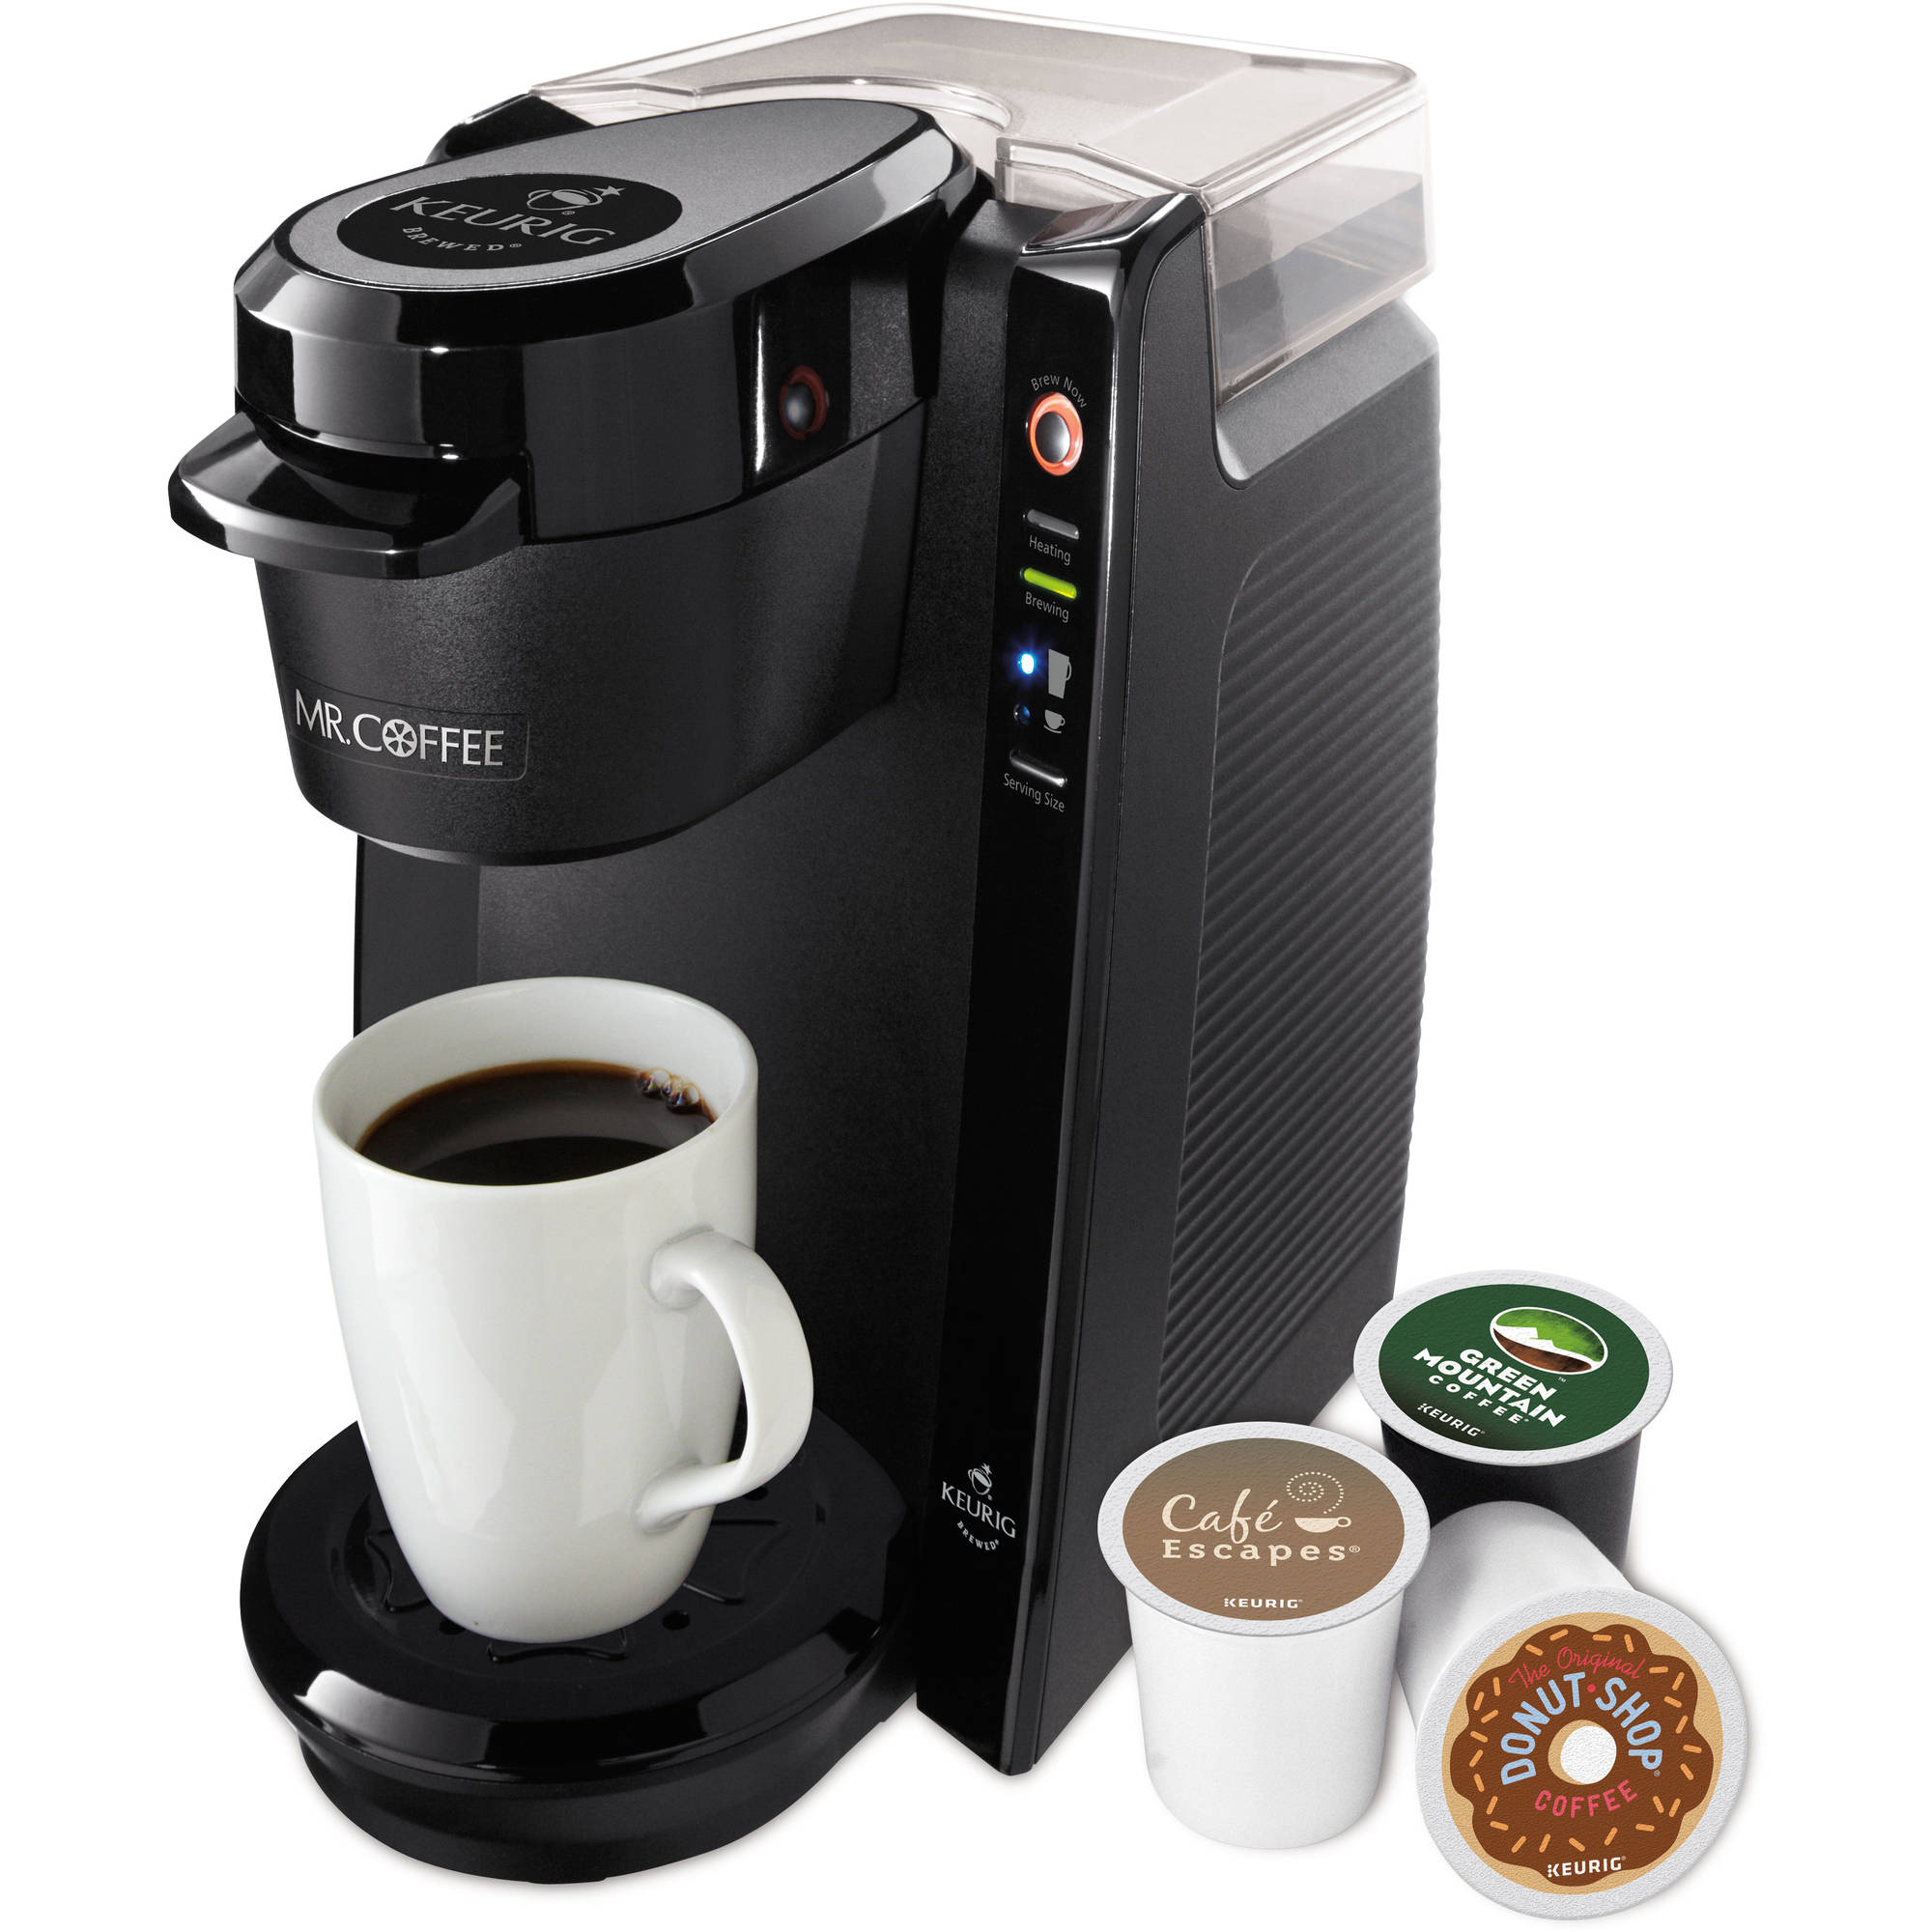 Mr. Coffee 24-oz Single Serve Coffee Maker, BVMC-KG5-001